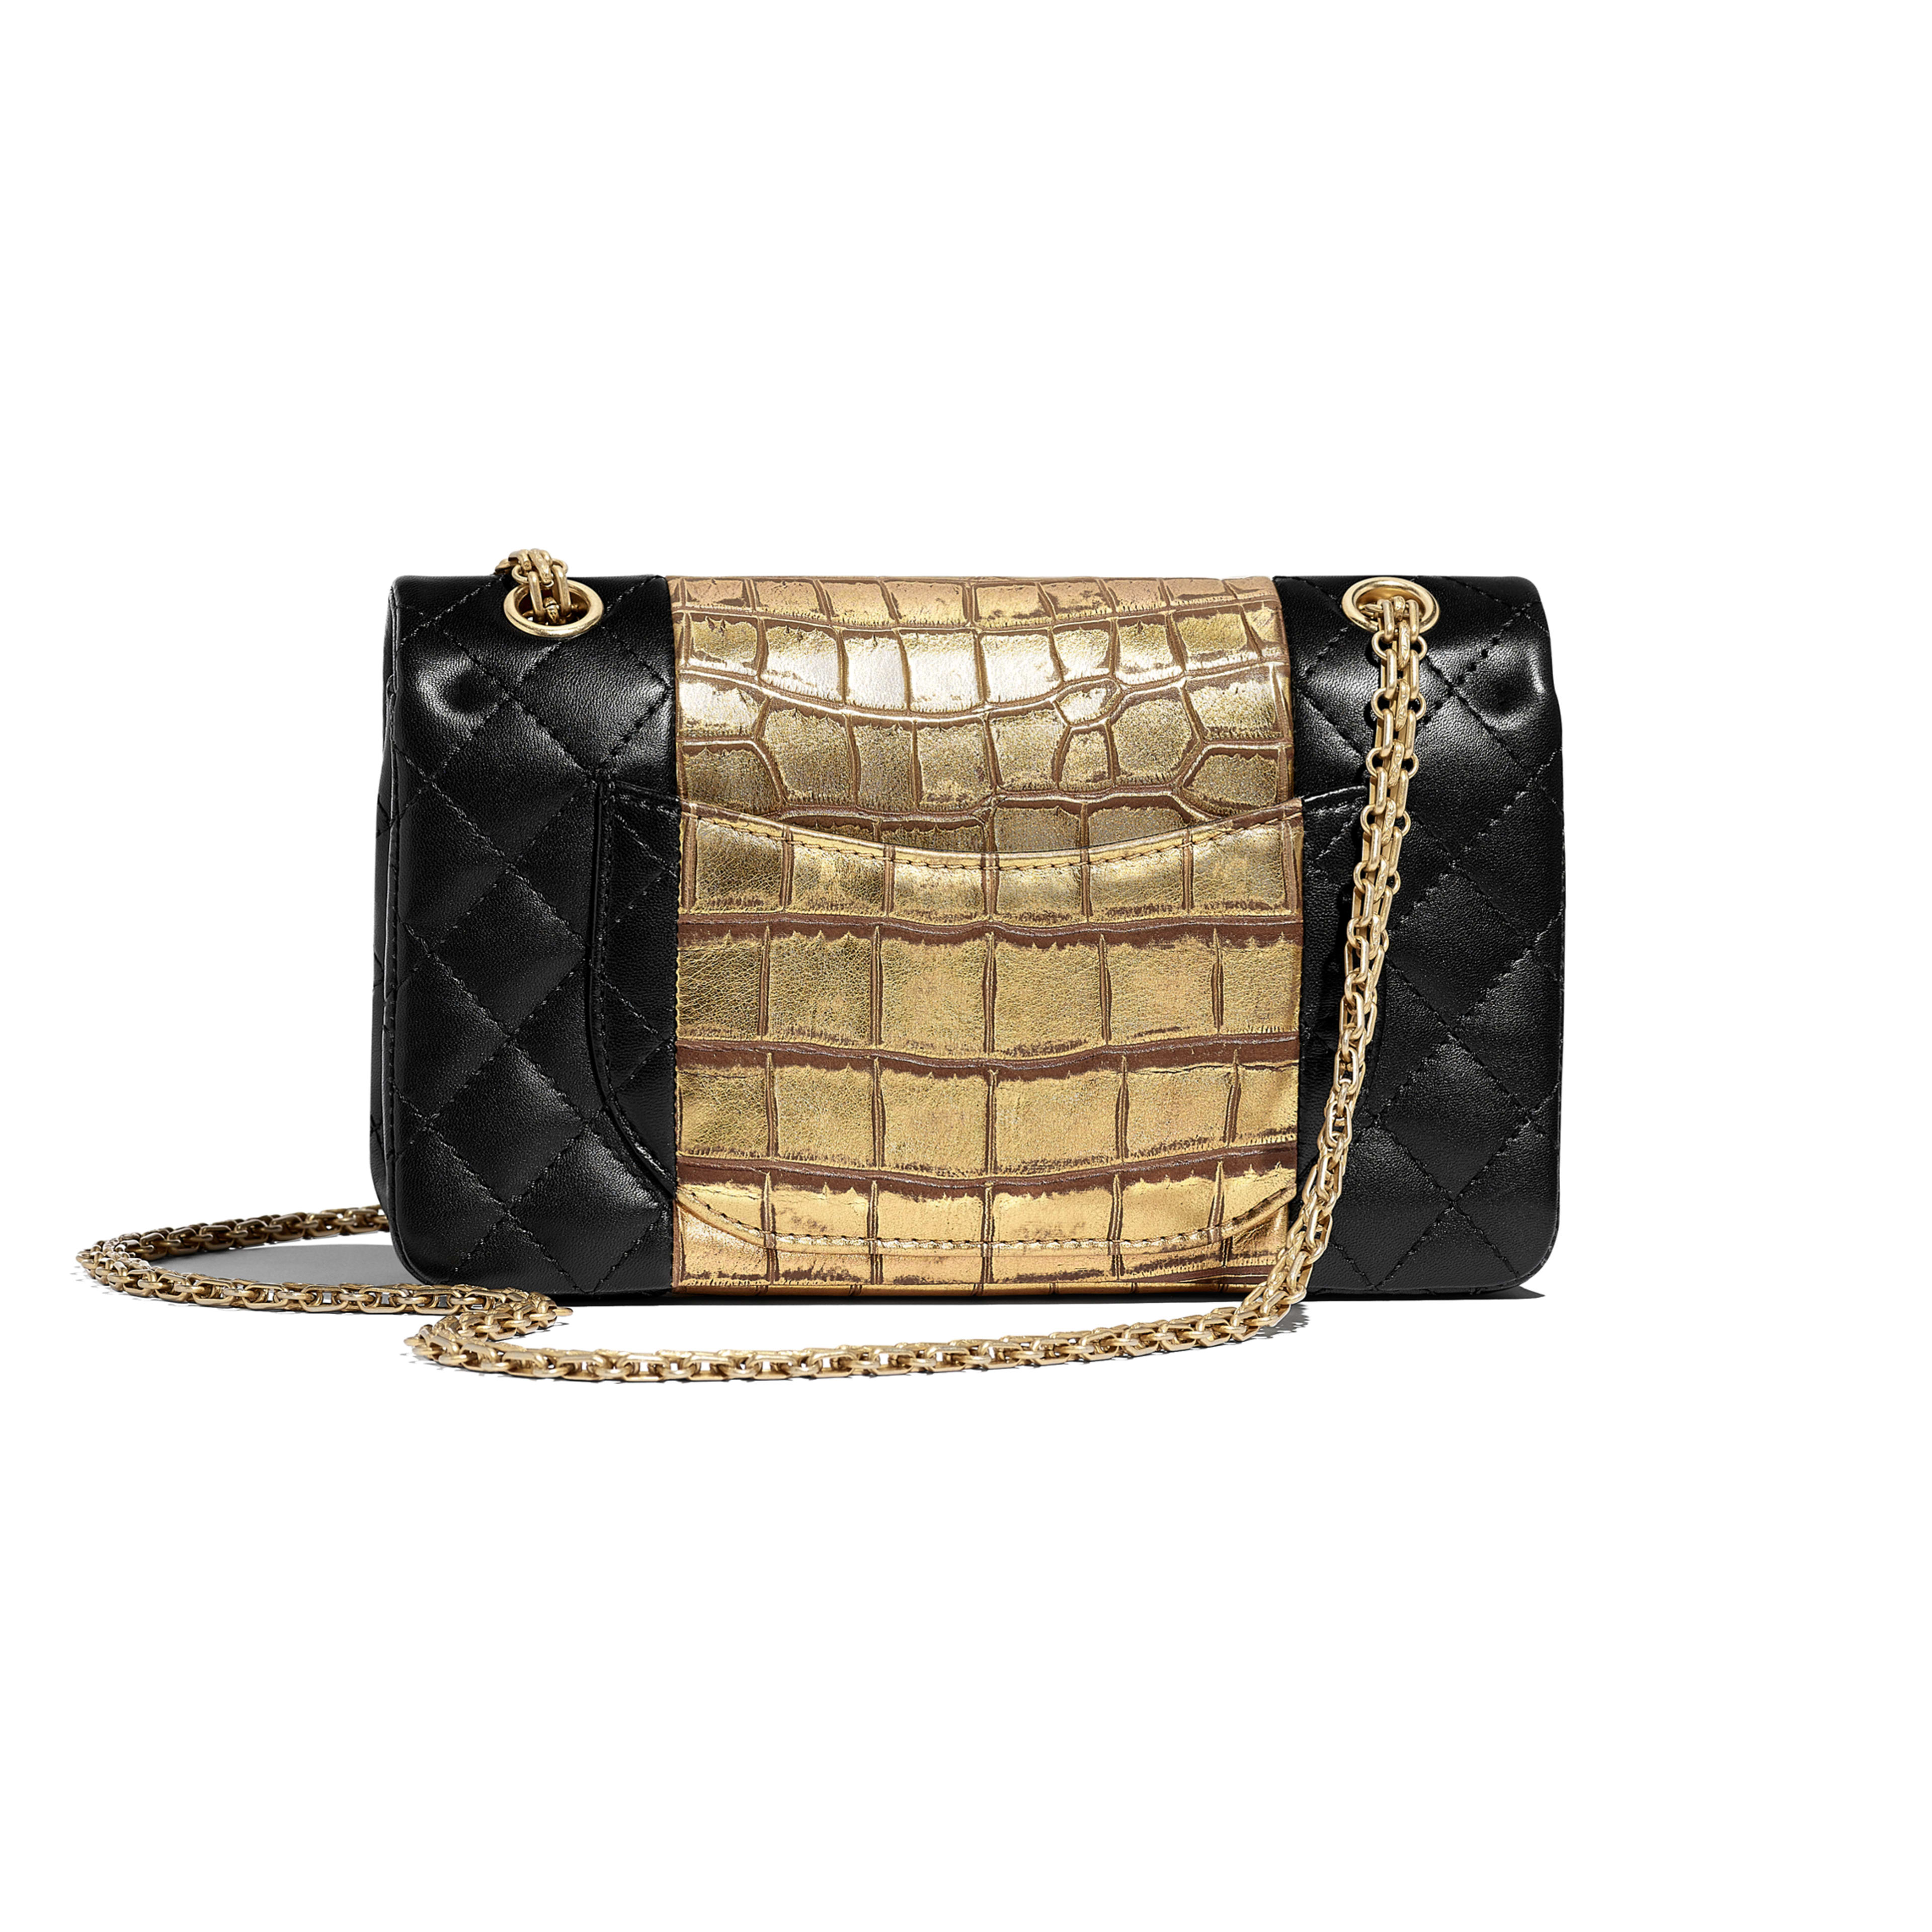 2.55 Handbag - Black & Gold - Lambskin, Crocodile Embossed Calfskin & Gold-Tone Metal - Alternative view - see full sized version